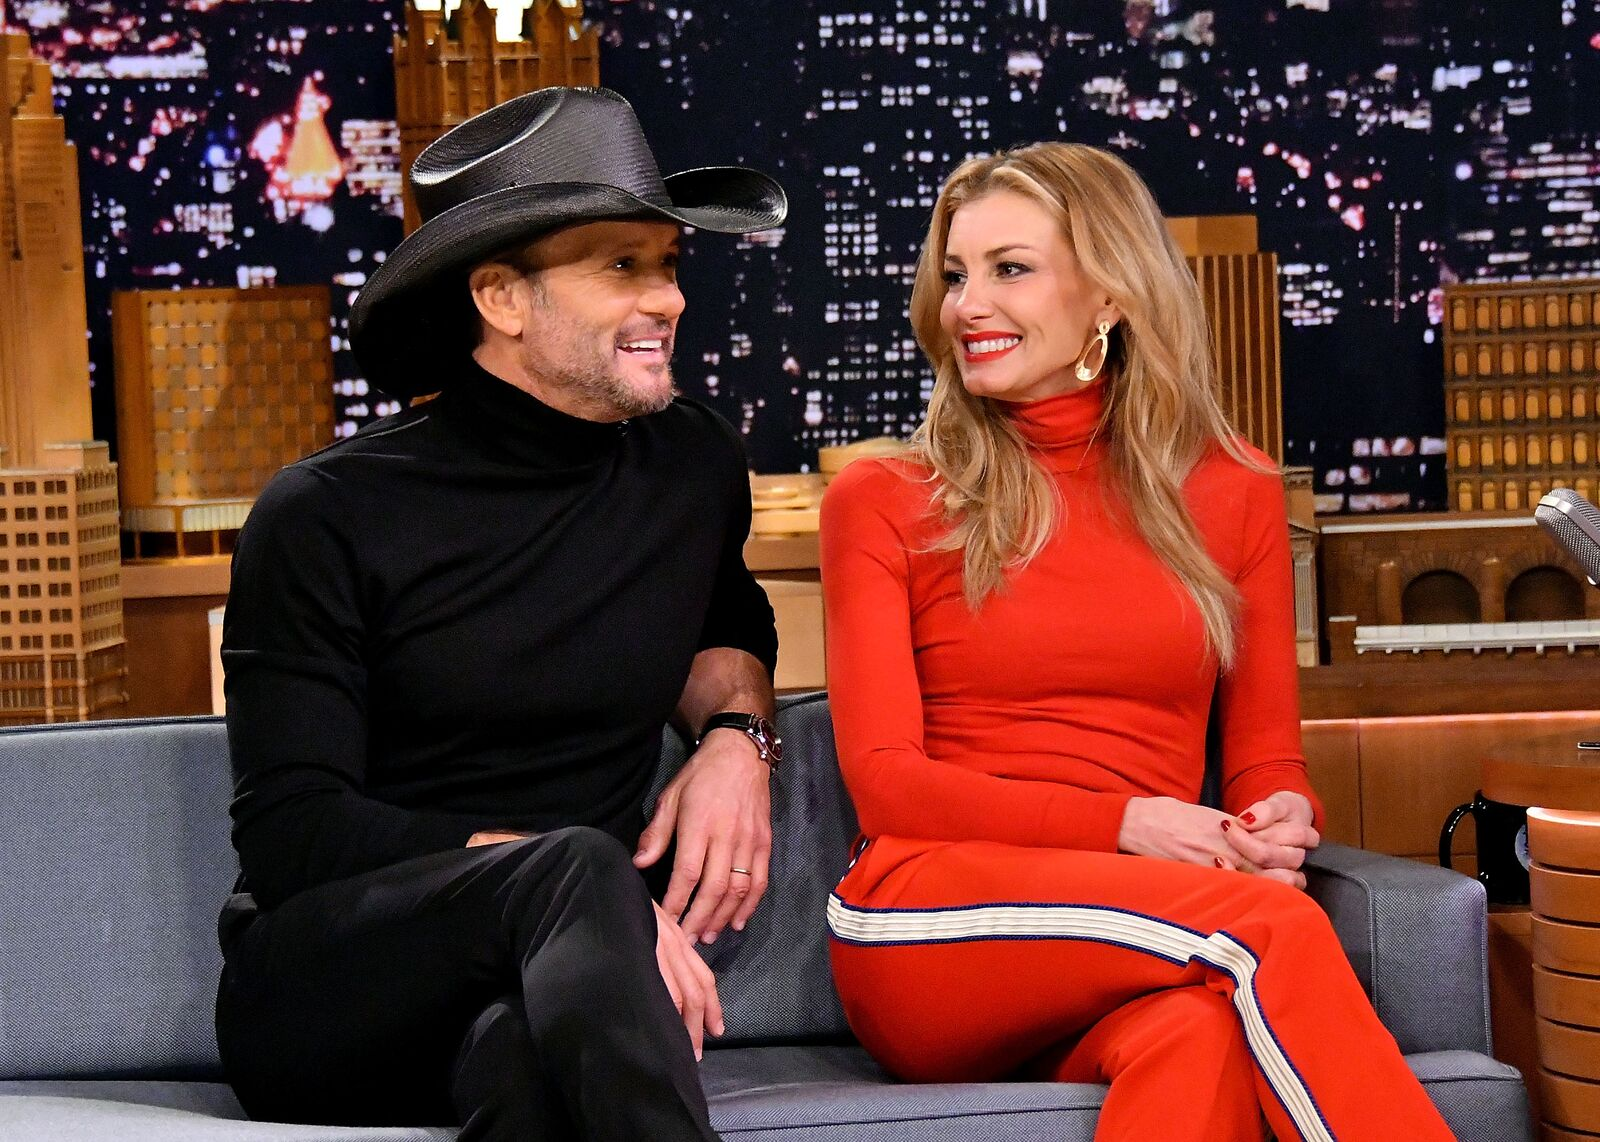 """Singer/songwriter Tim McGraw (L) and wife/singer Faith Hill are interviewed on """"The Tonight Show Starring Jimmy Fallon"""" at Rockefeller Center on November 16, 2017 in New York City 